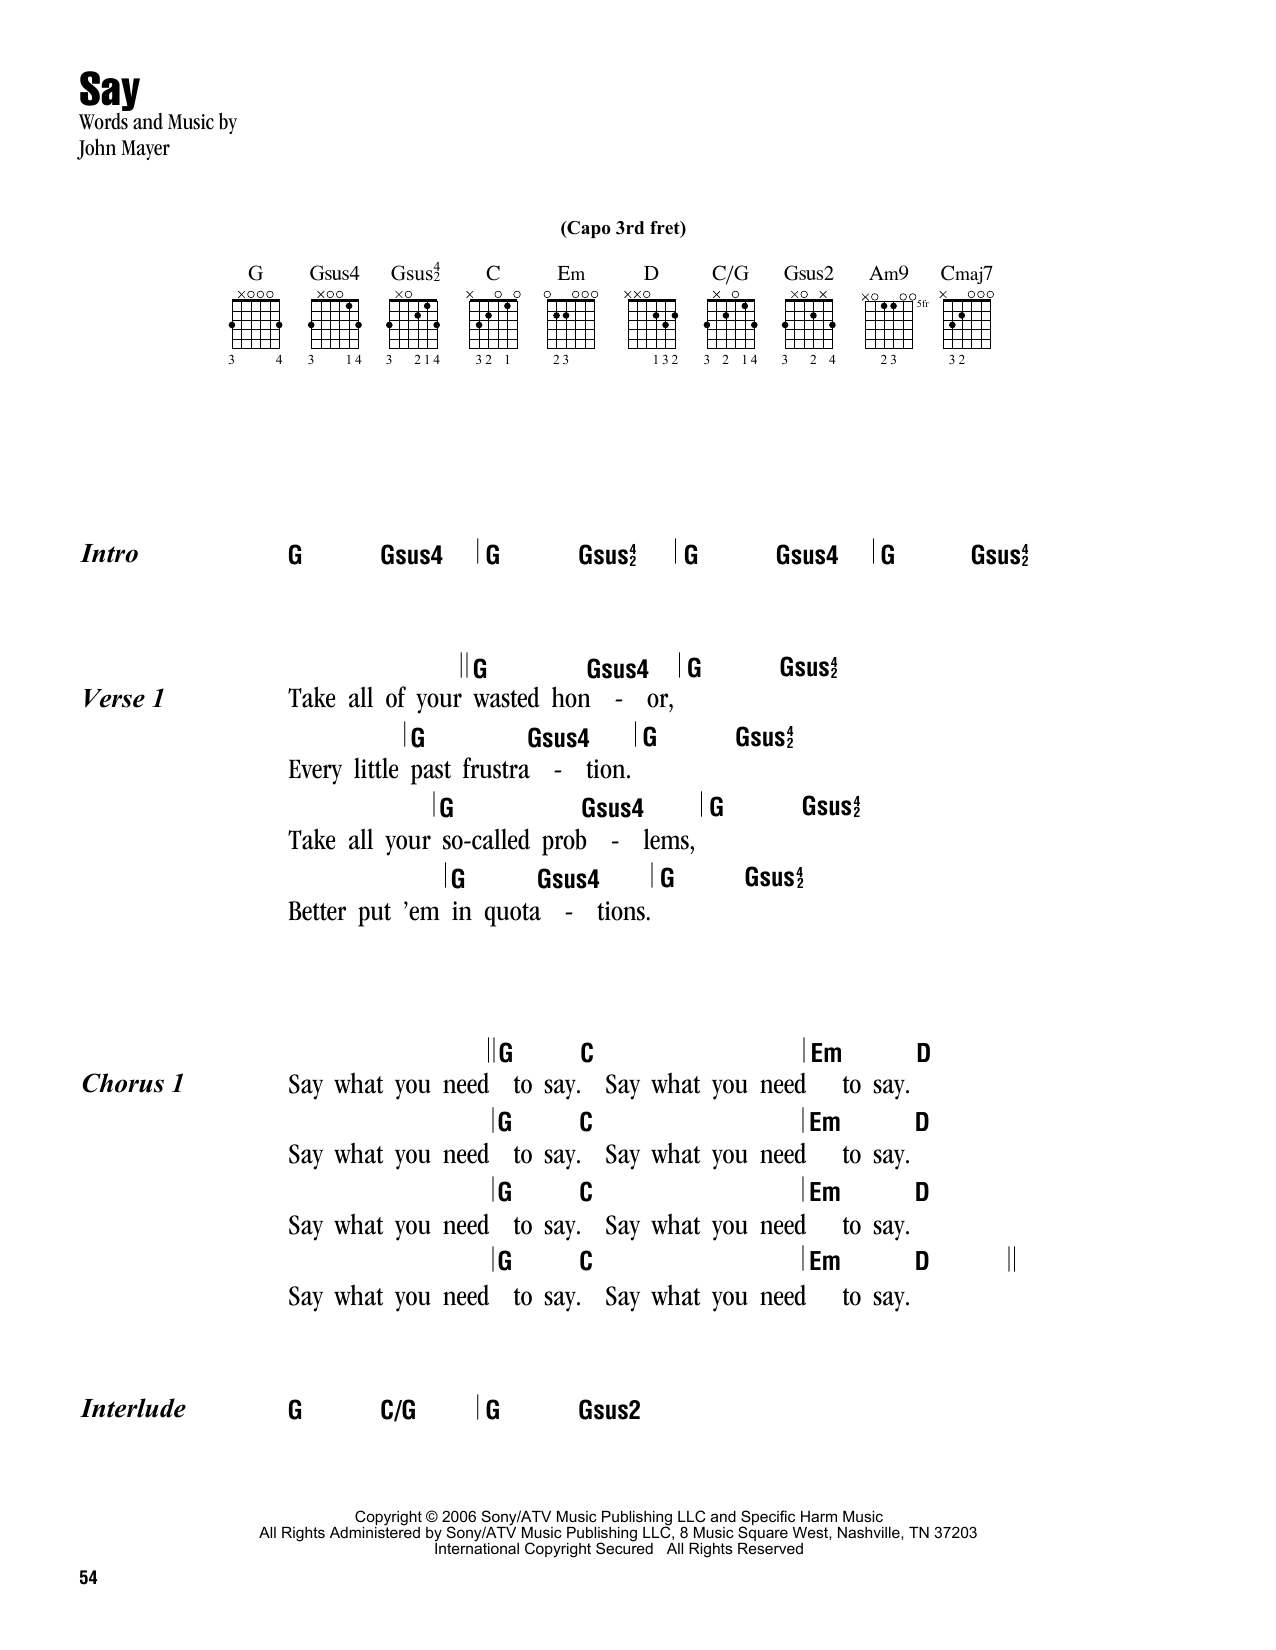 Say sheet music by john mayer lyrics chords 162944 john mayer say lyrics chords hexwebz Image collections